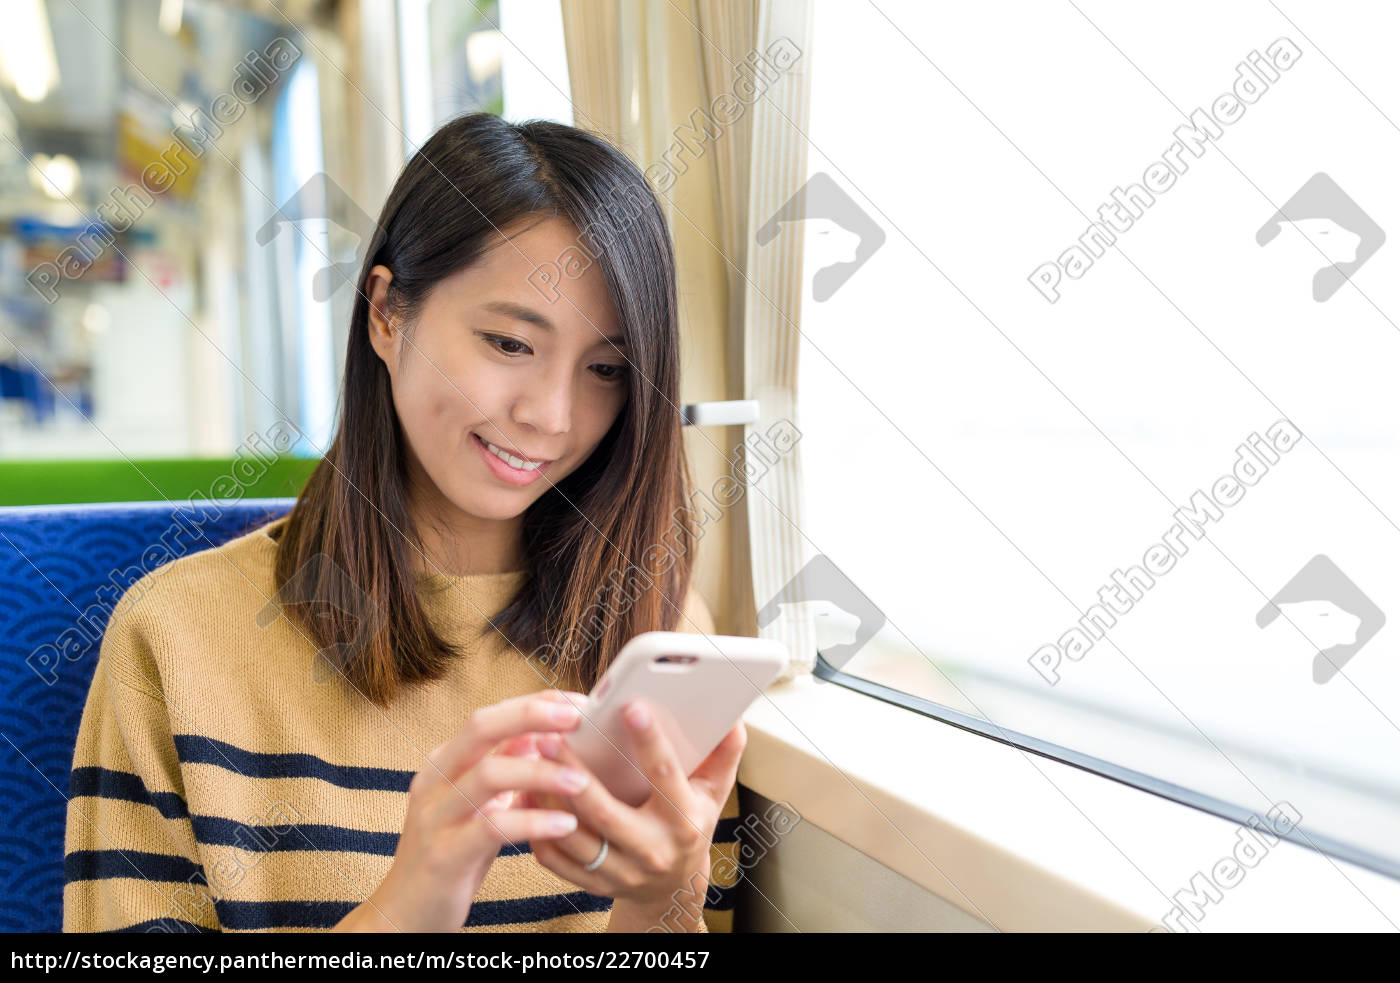 woman, use, of, mobile, phone, on - 22700457